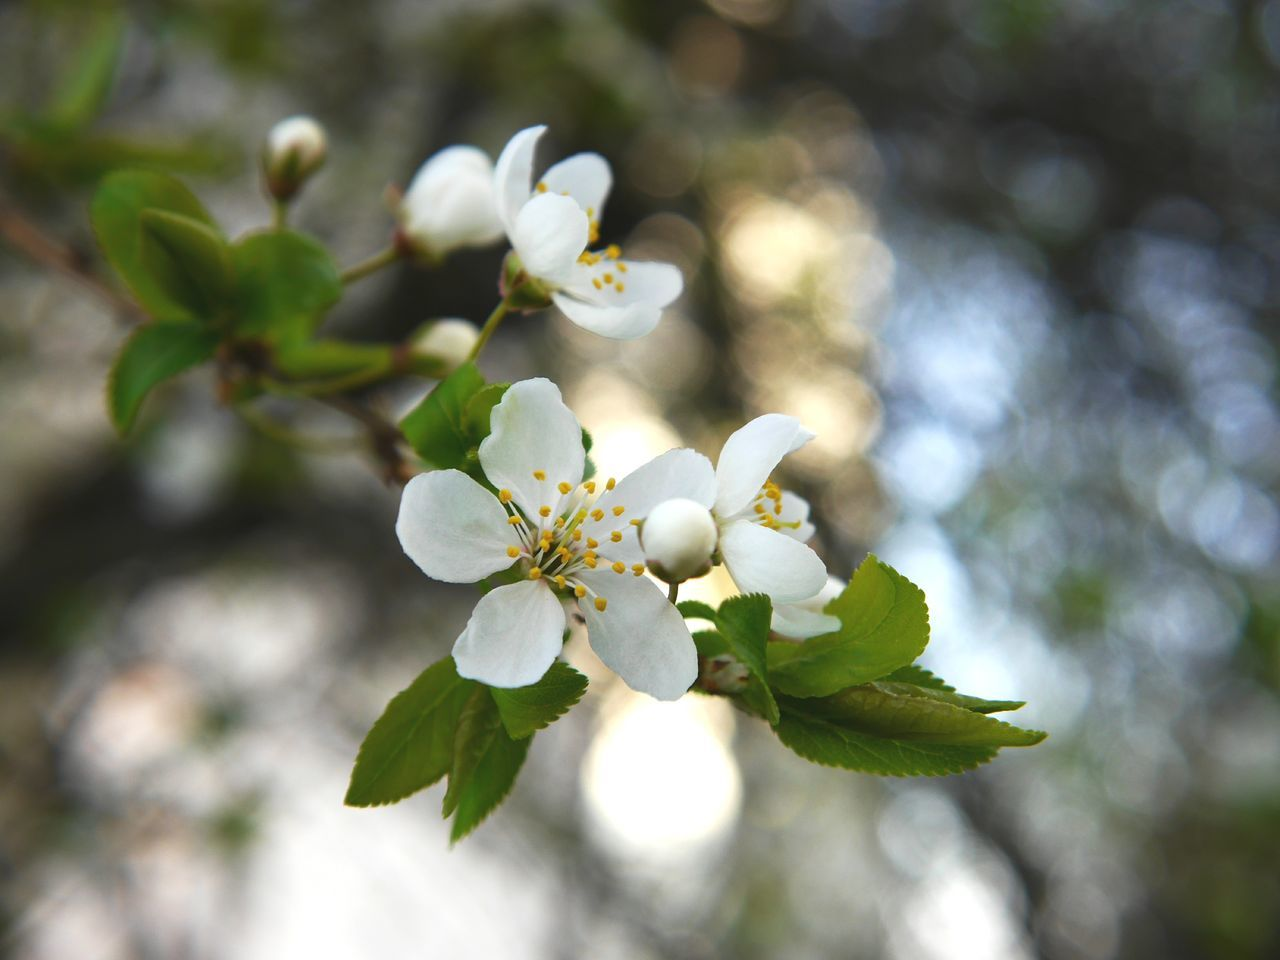 Spring has sprung... Flower Growth Springtime Blossom Nature Plant White Color Flower Head Beauty In Nature Almond Tree Branch Tree Twig Beauty Close-up No People Freshness Living Organism Day Outdoors